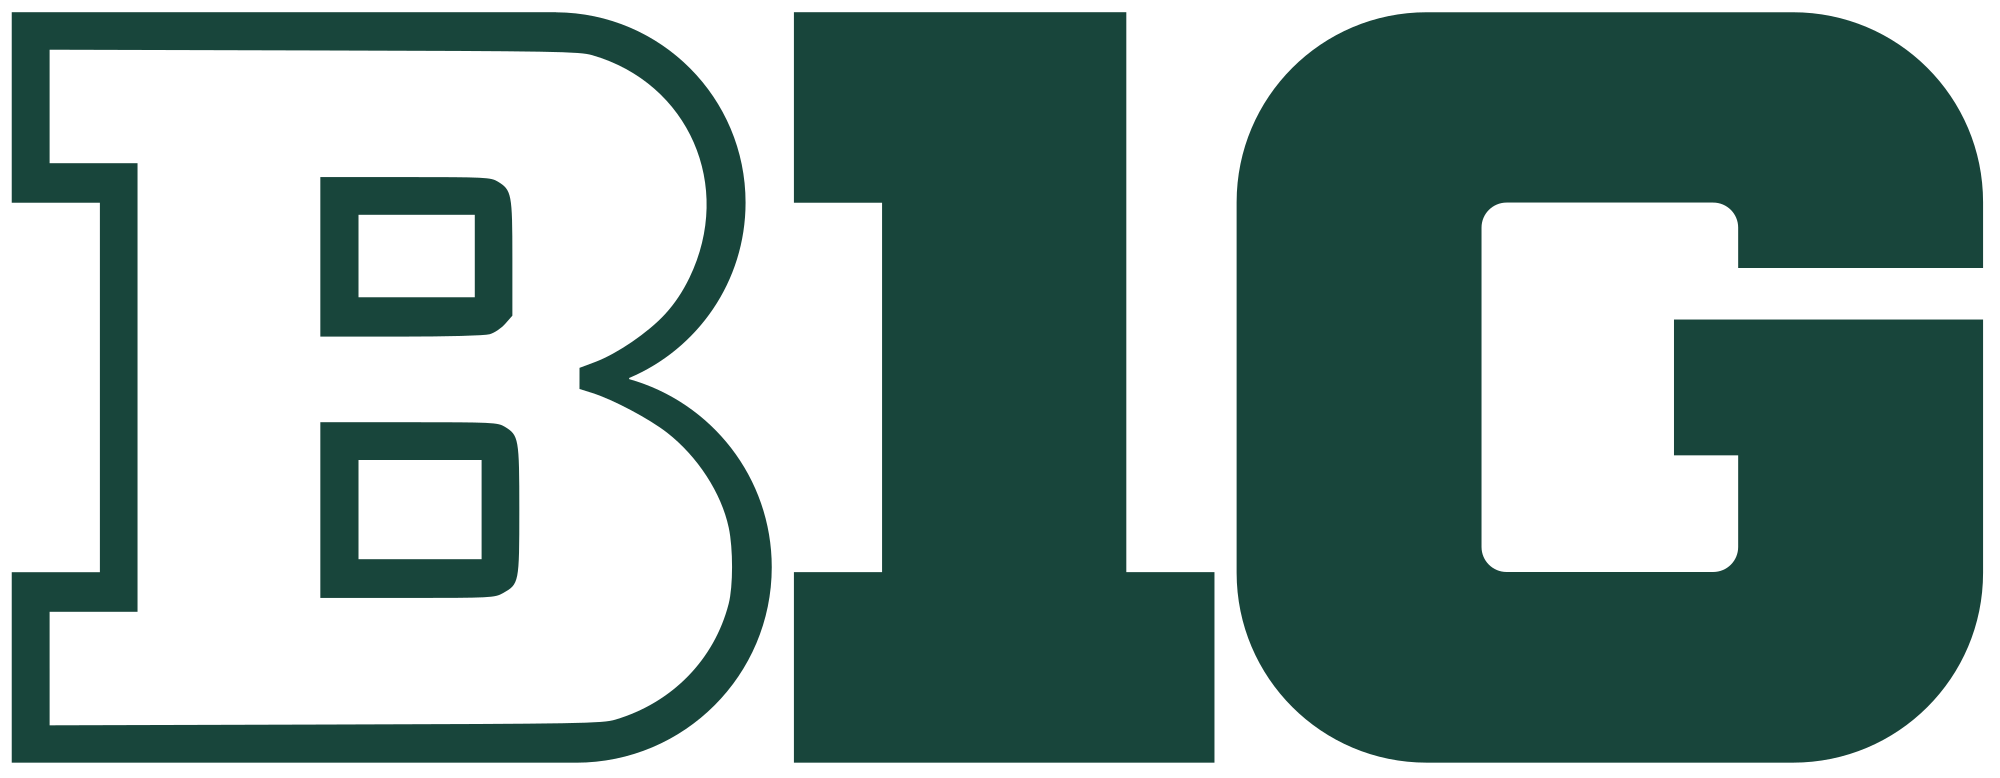 Spartan clipart michigan state. File big ten logo